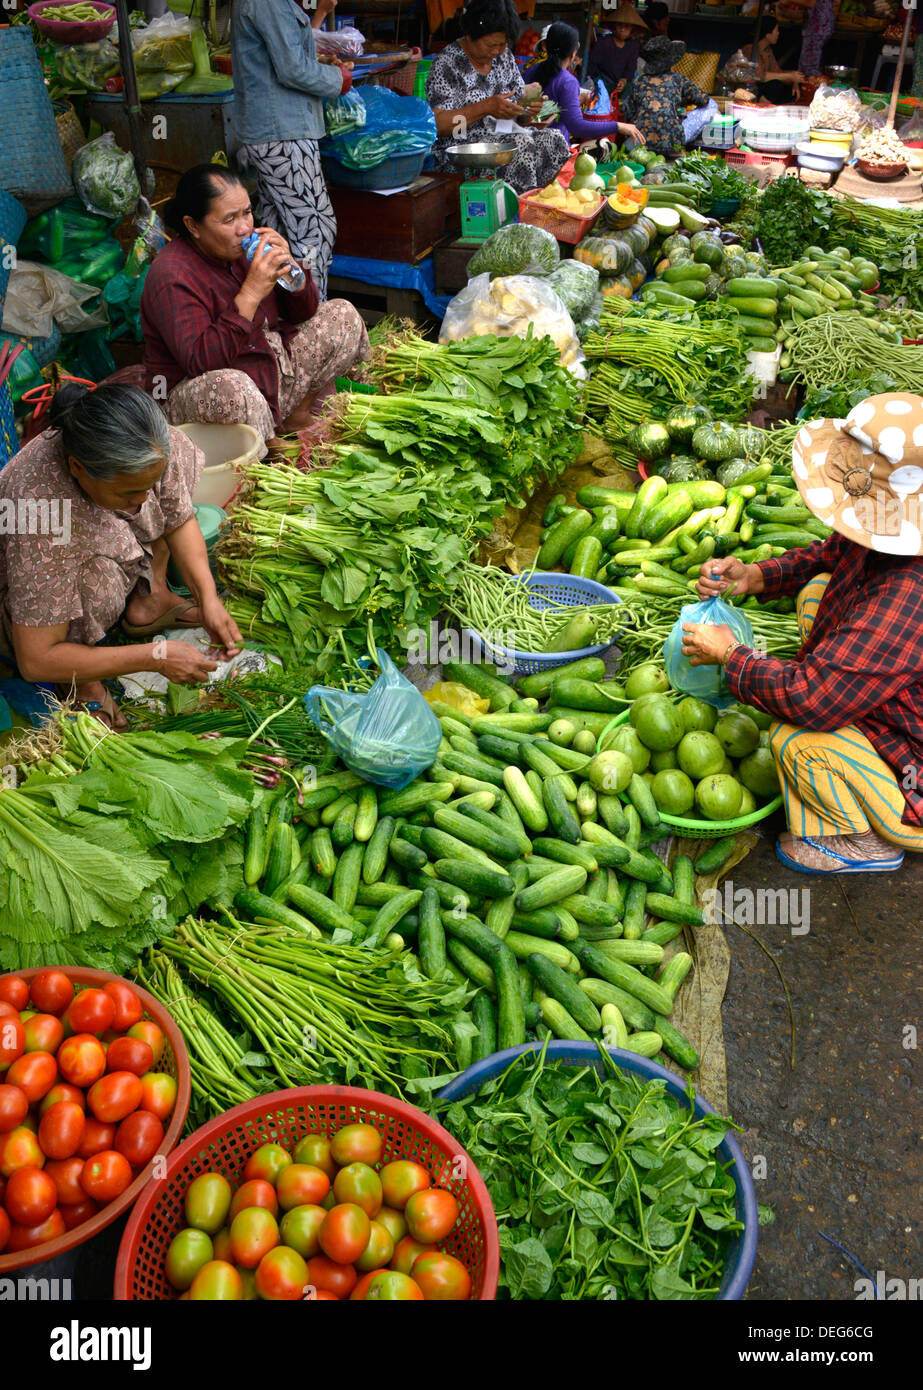 Market, Phan Thiet, Vietnam, Indochina, Southeast Asia, Asia - Stock Image